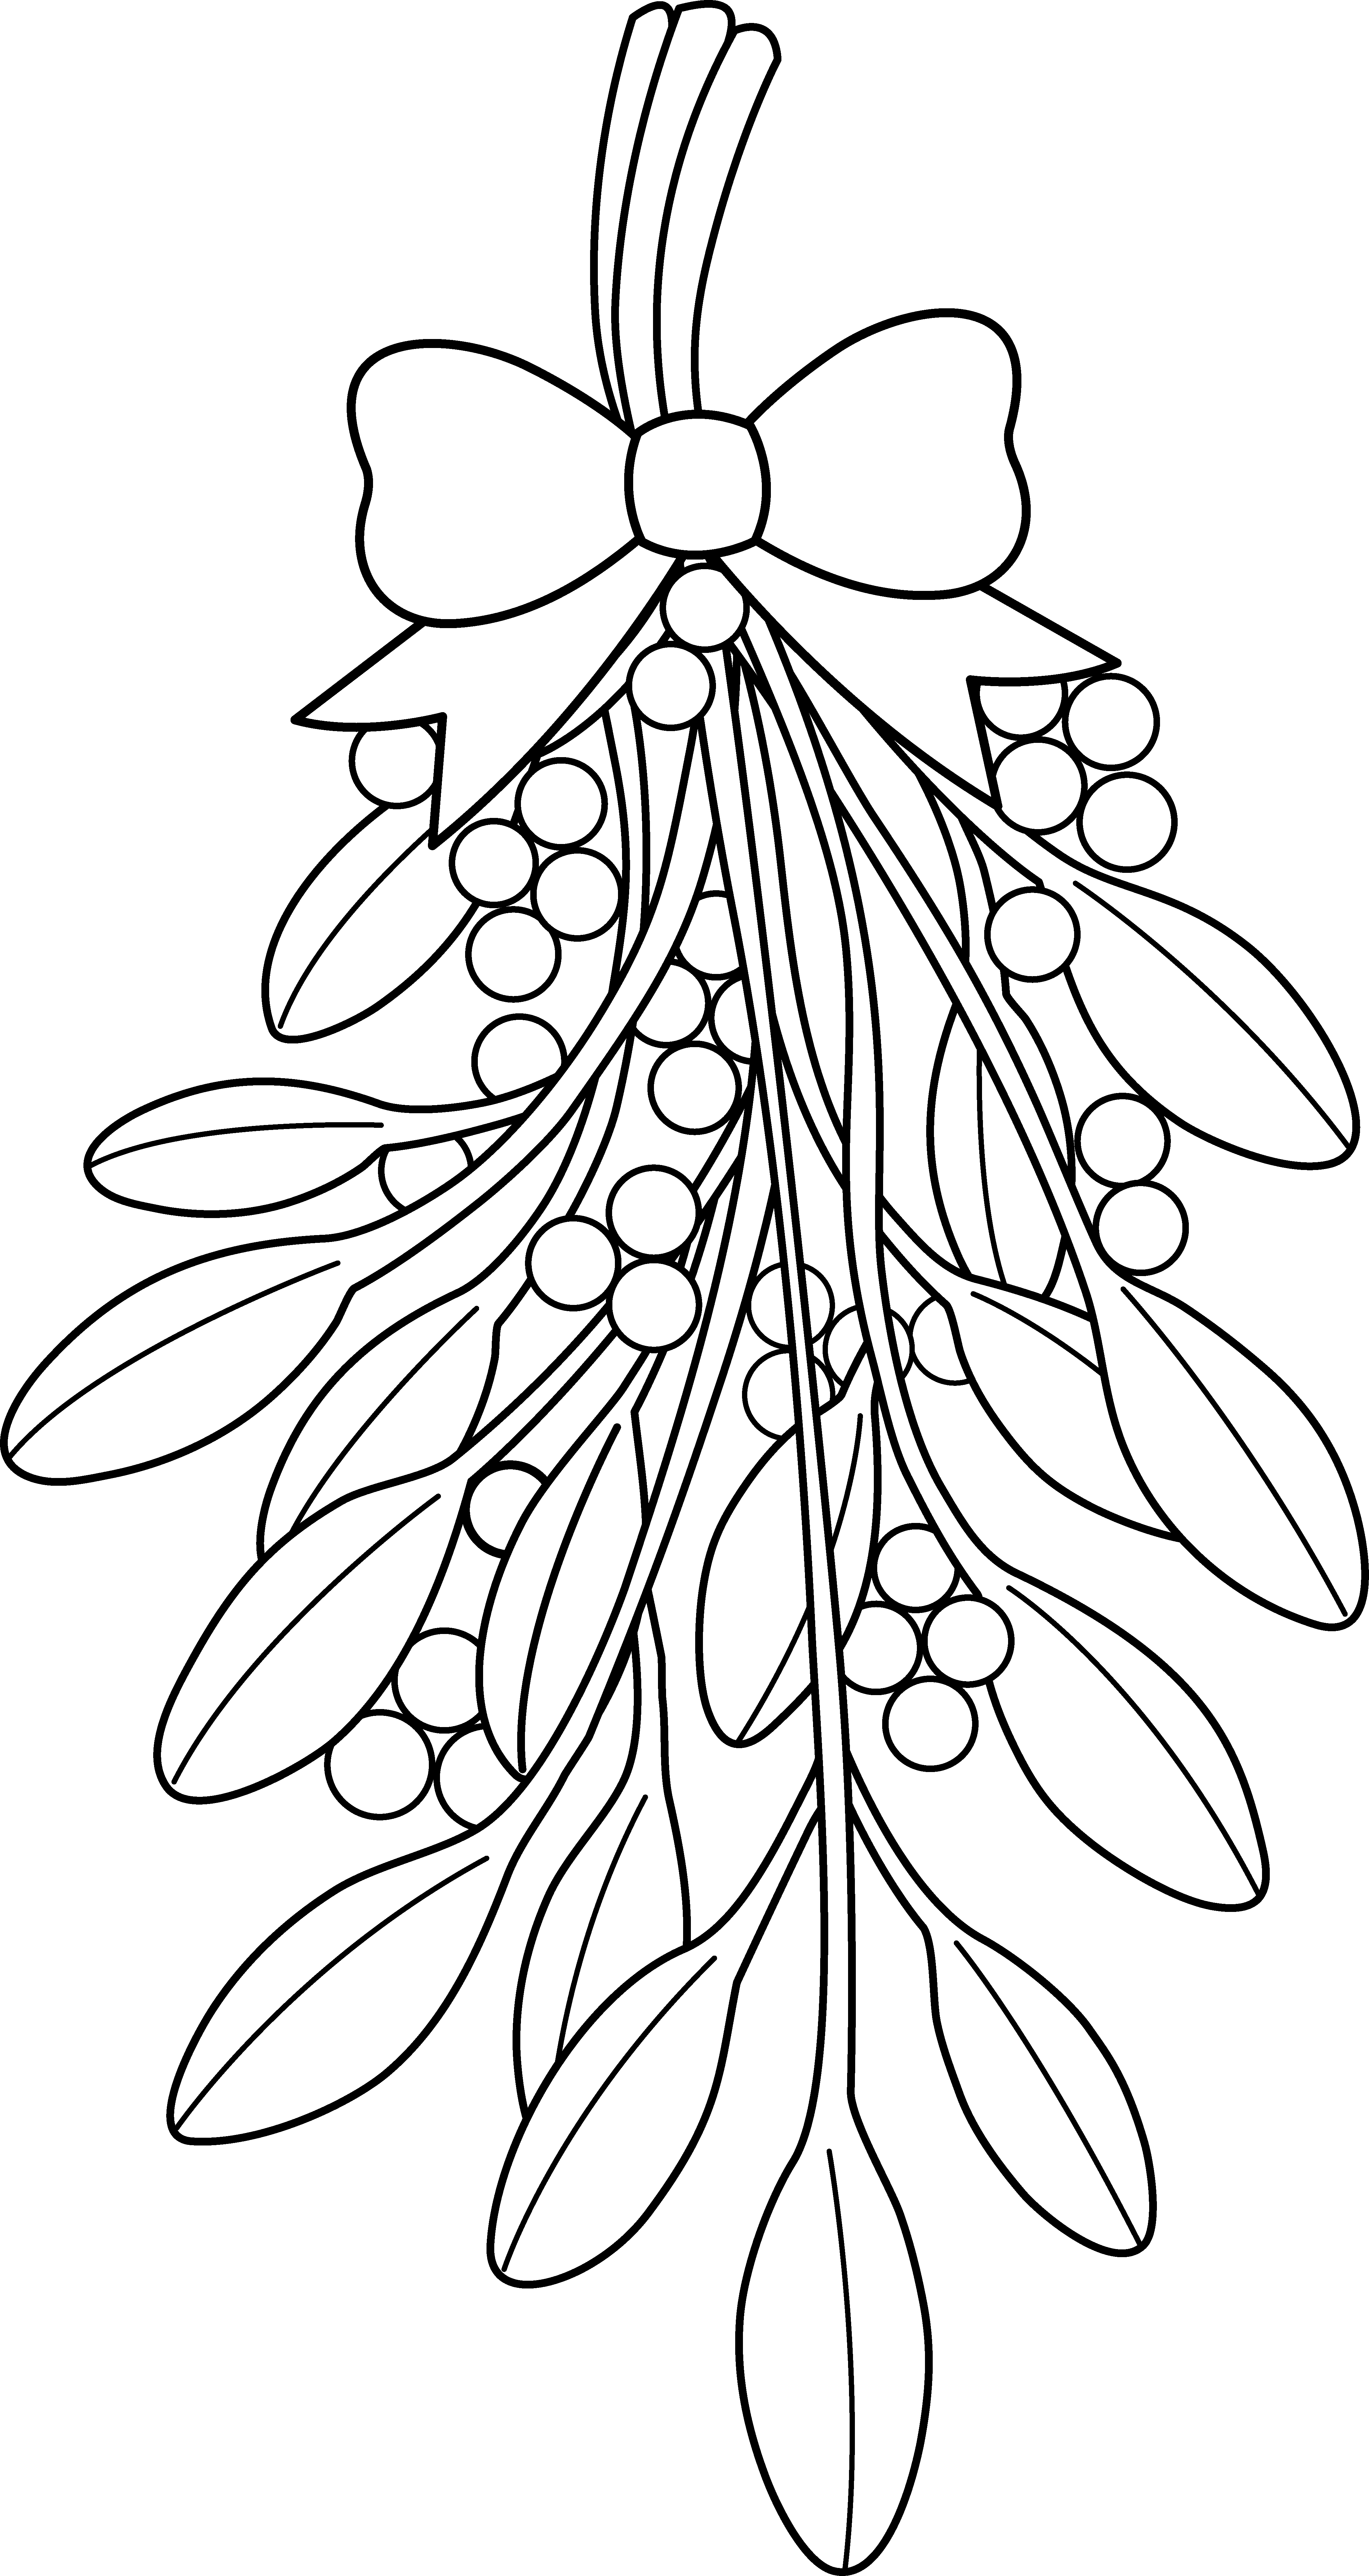 Christmas Garland Coloring Pages With Mistletoe Clipart Black And White Adult